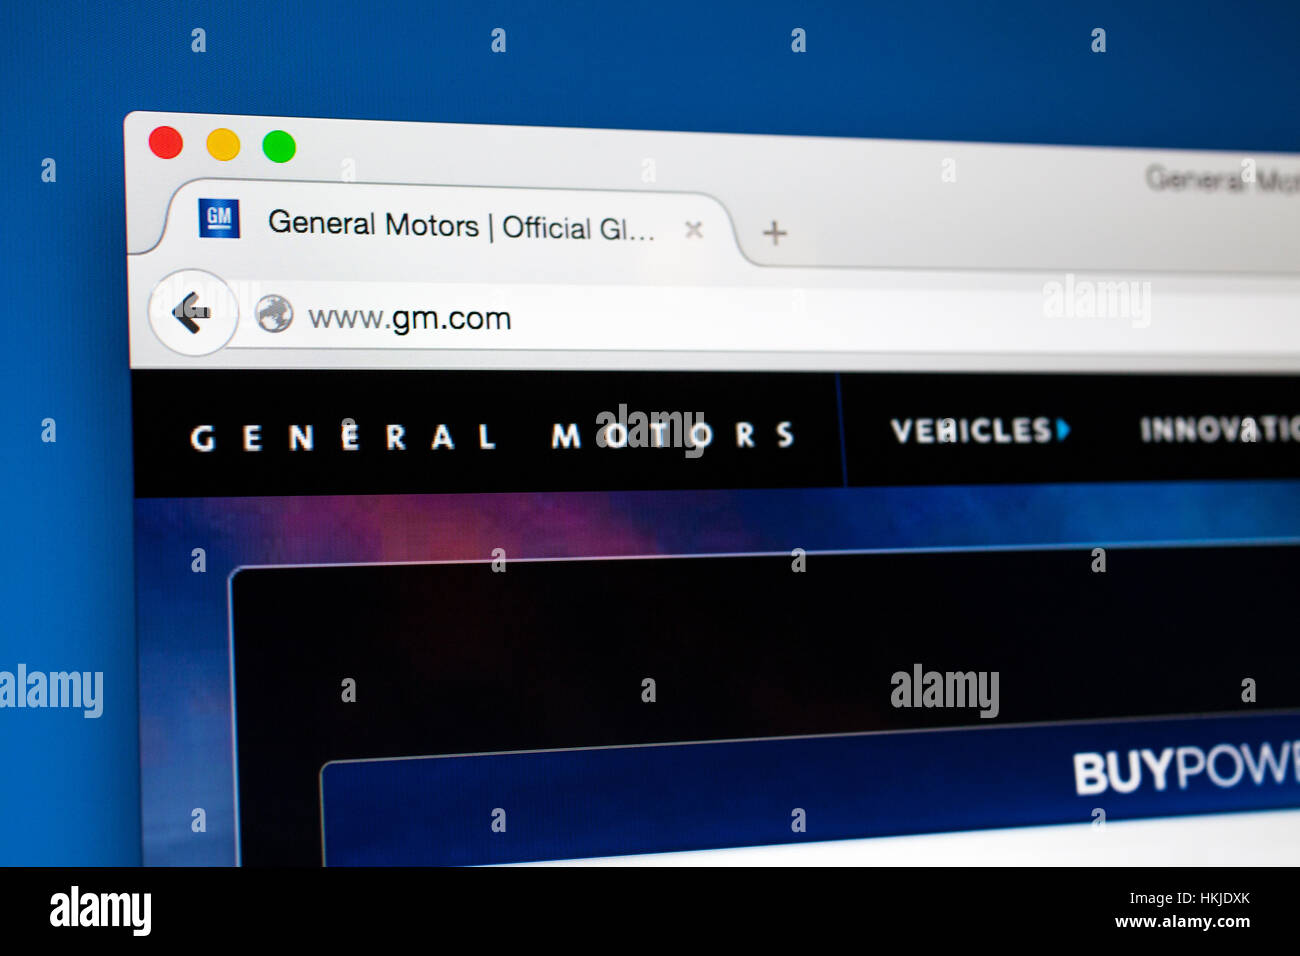 LONDON, UK - OCTOBER 22ND 2015: The homepage of the General Motors Company official website, on 22nd October 2015. - Stock Image